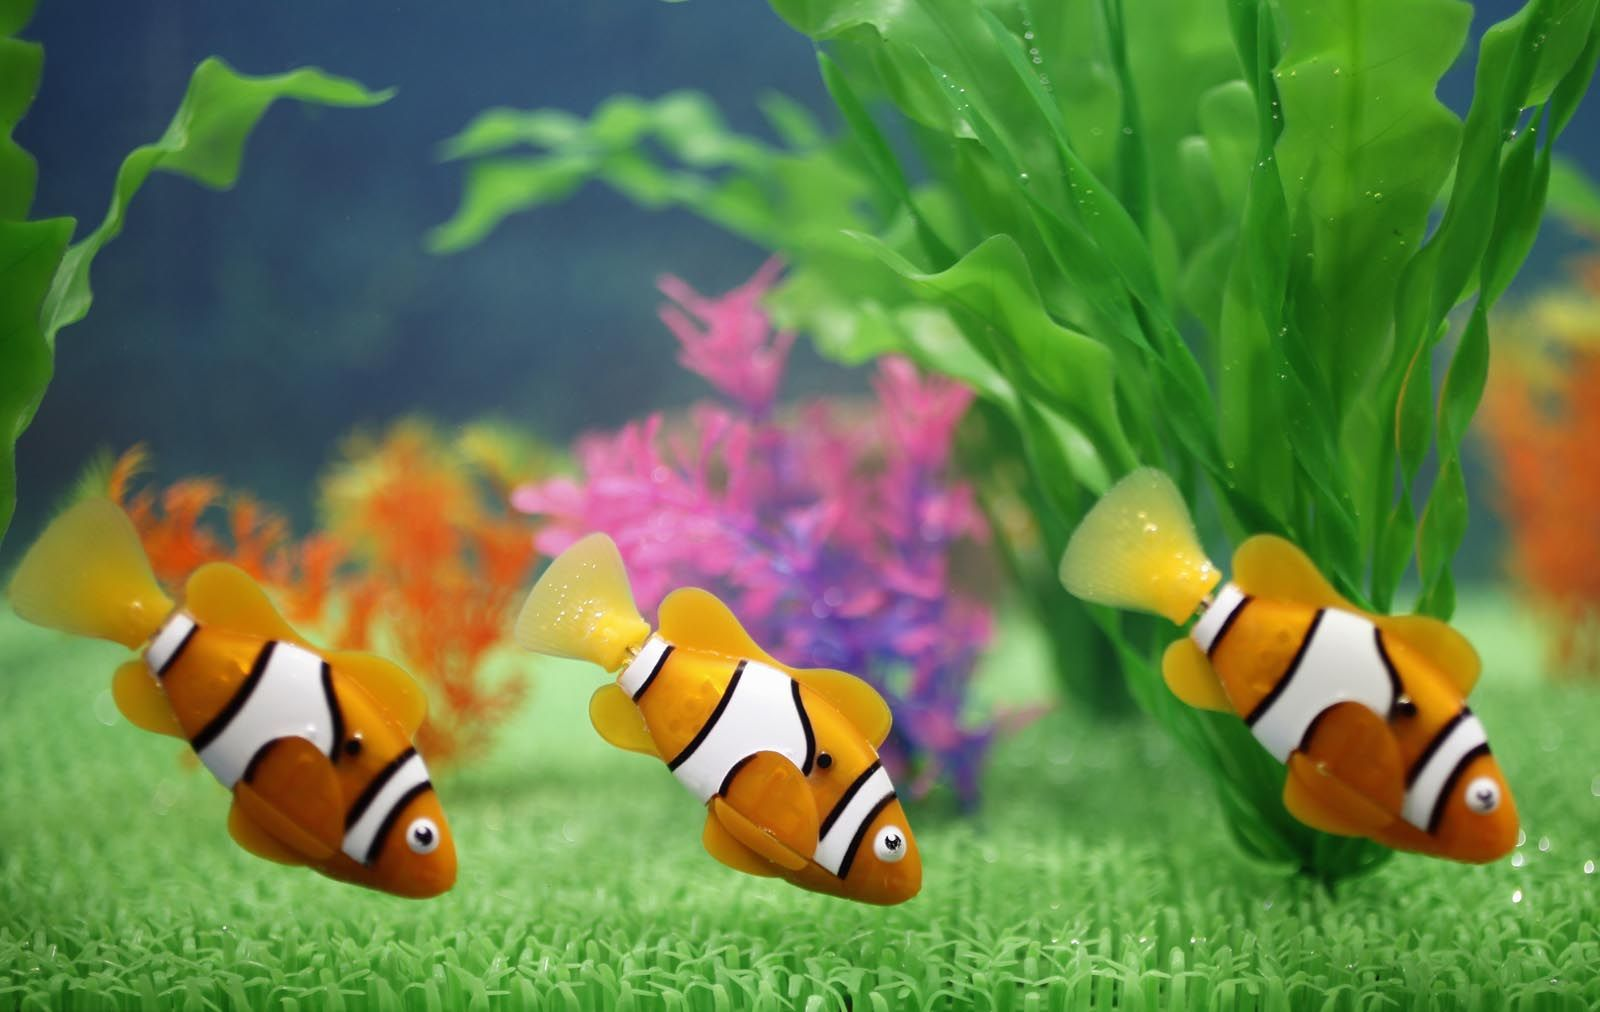 Robo Fish Electronic Pet Fish Orange Clownfish Nemo